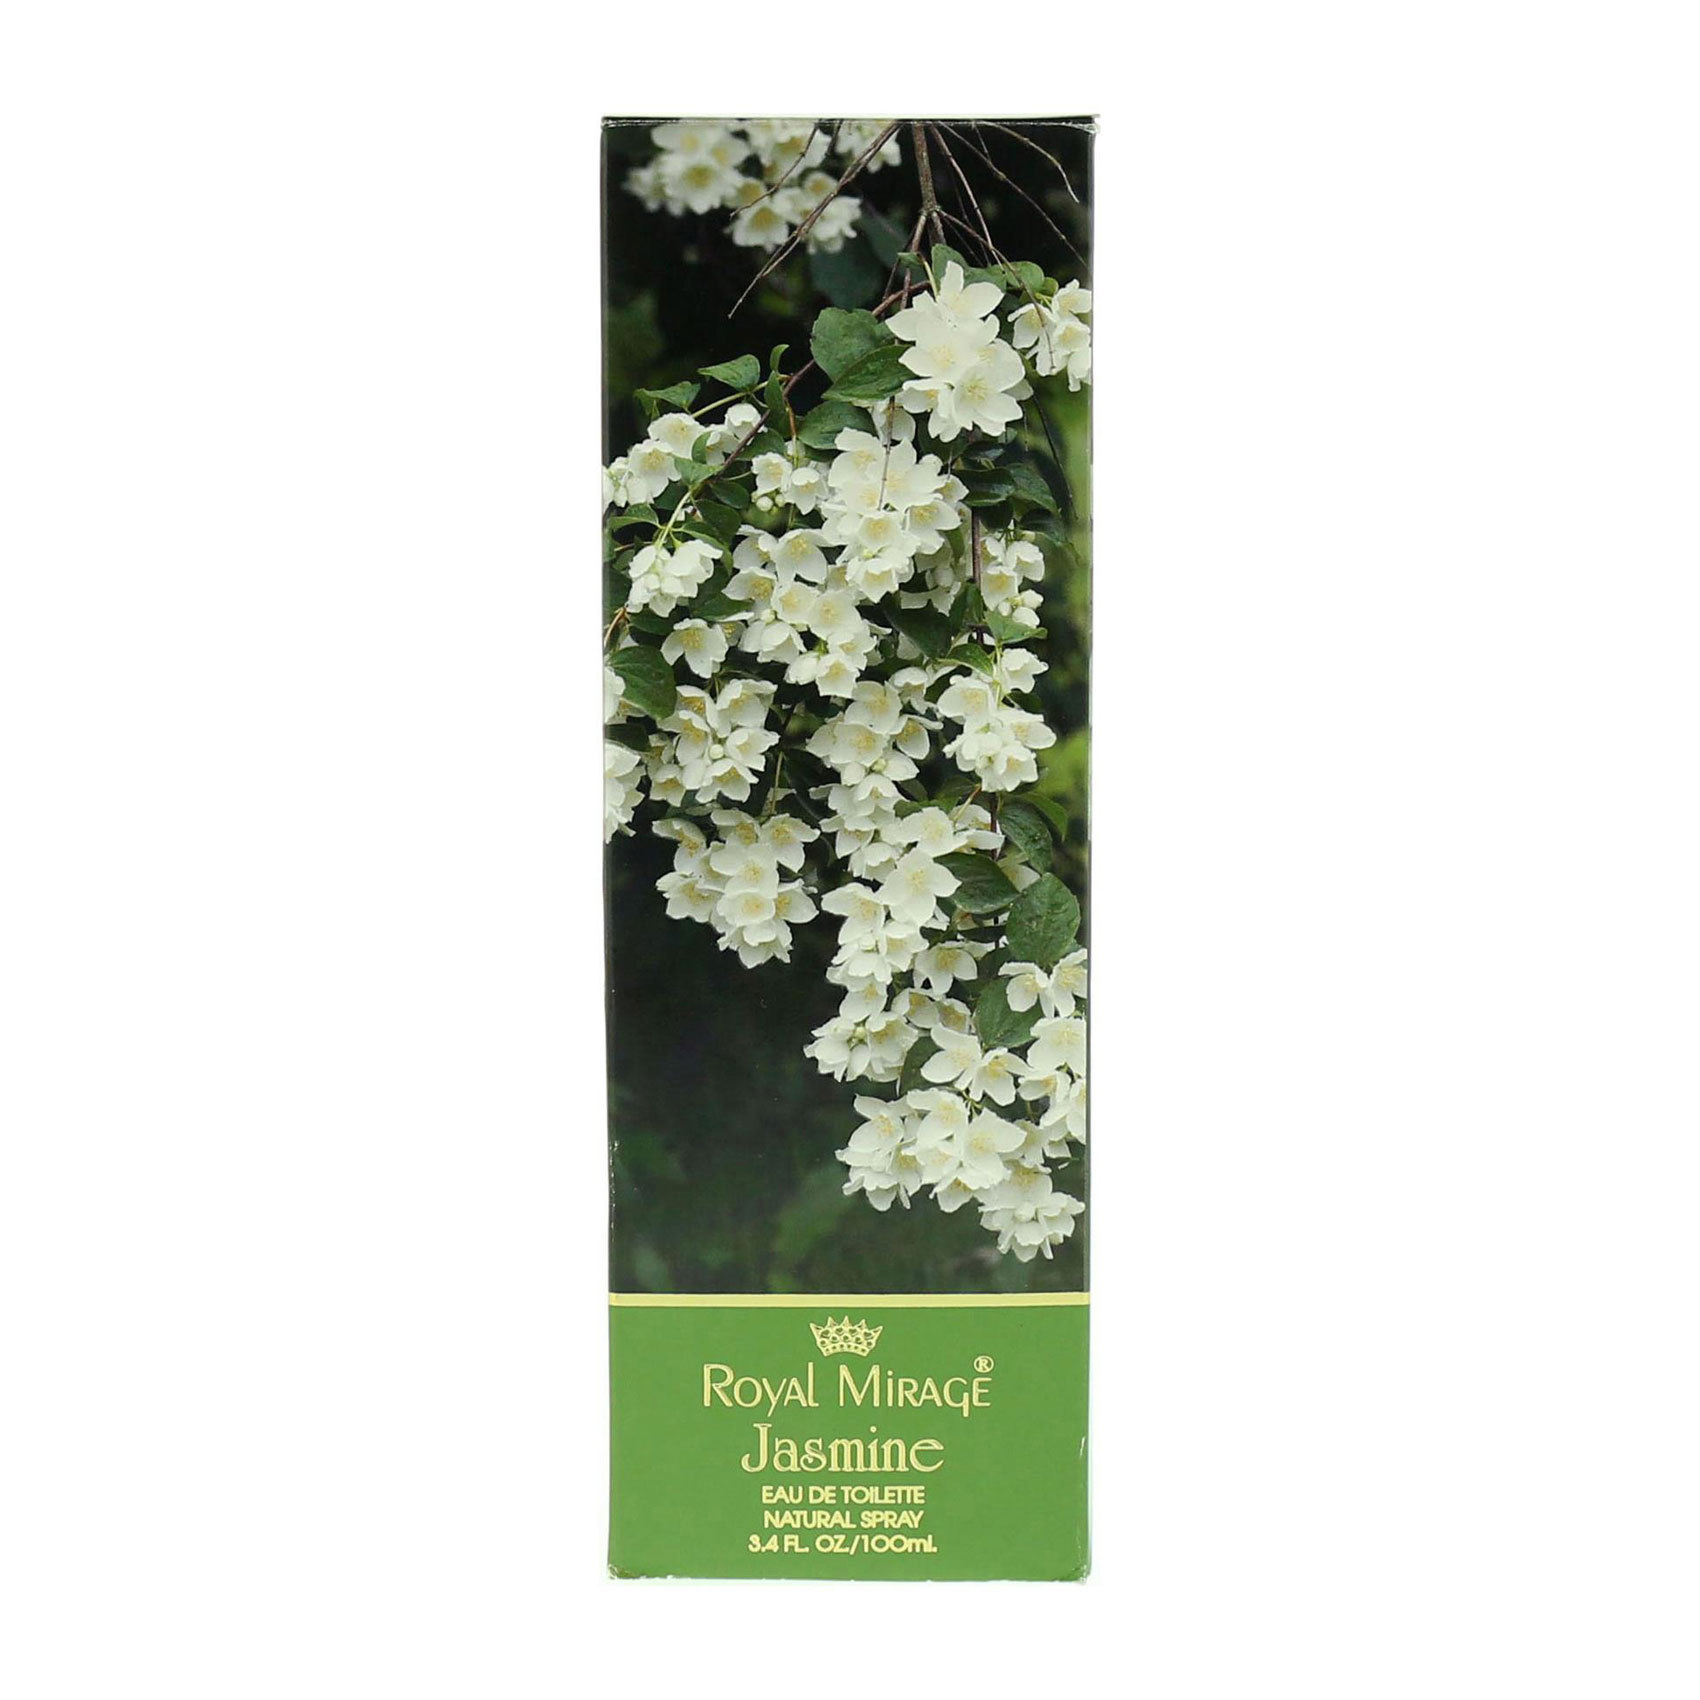 ROYAL MIRAGE EDT JASMINE 100ML